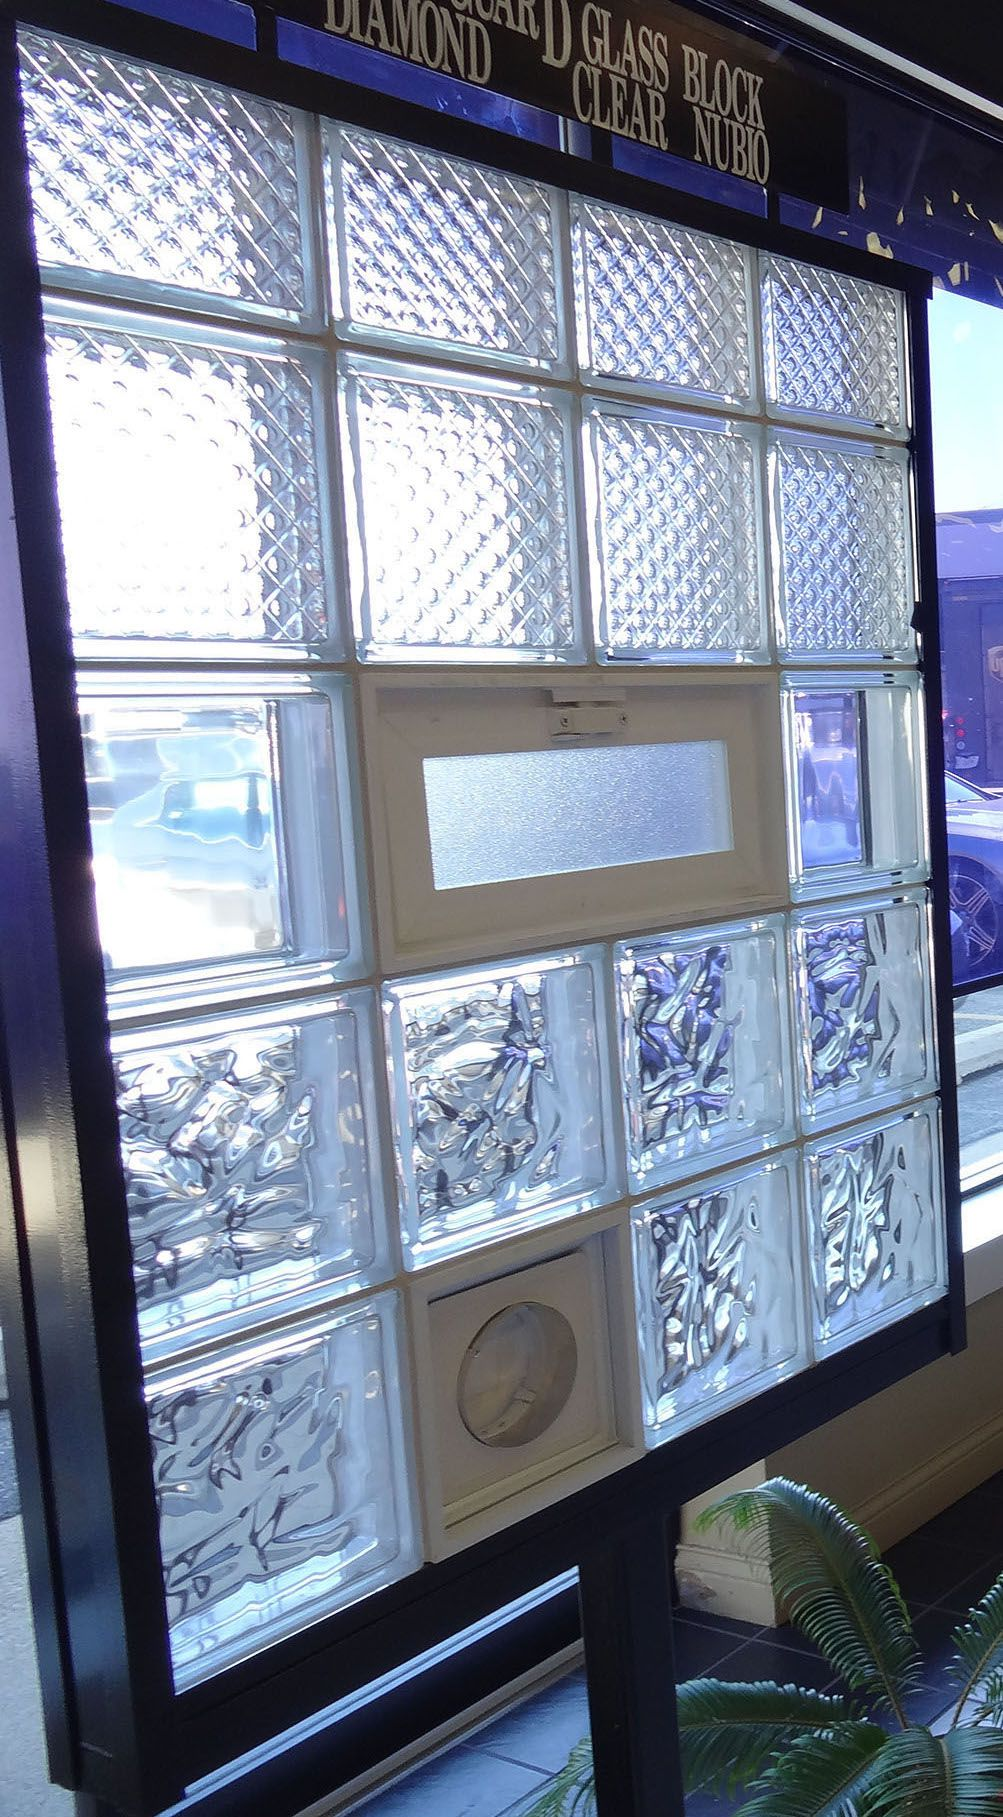 We Can Create Glass Block Windows With Air Vents Any Size Perfect For Basements Or Lower Level Rooms Ge Glass Block Windows Windows And Doors Glass Blocks